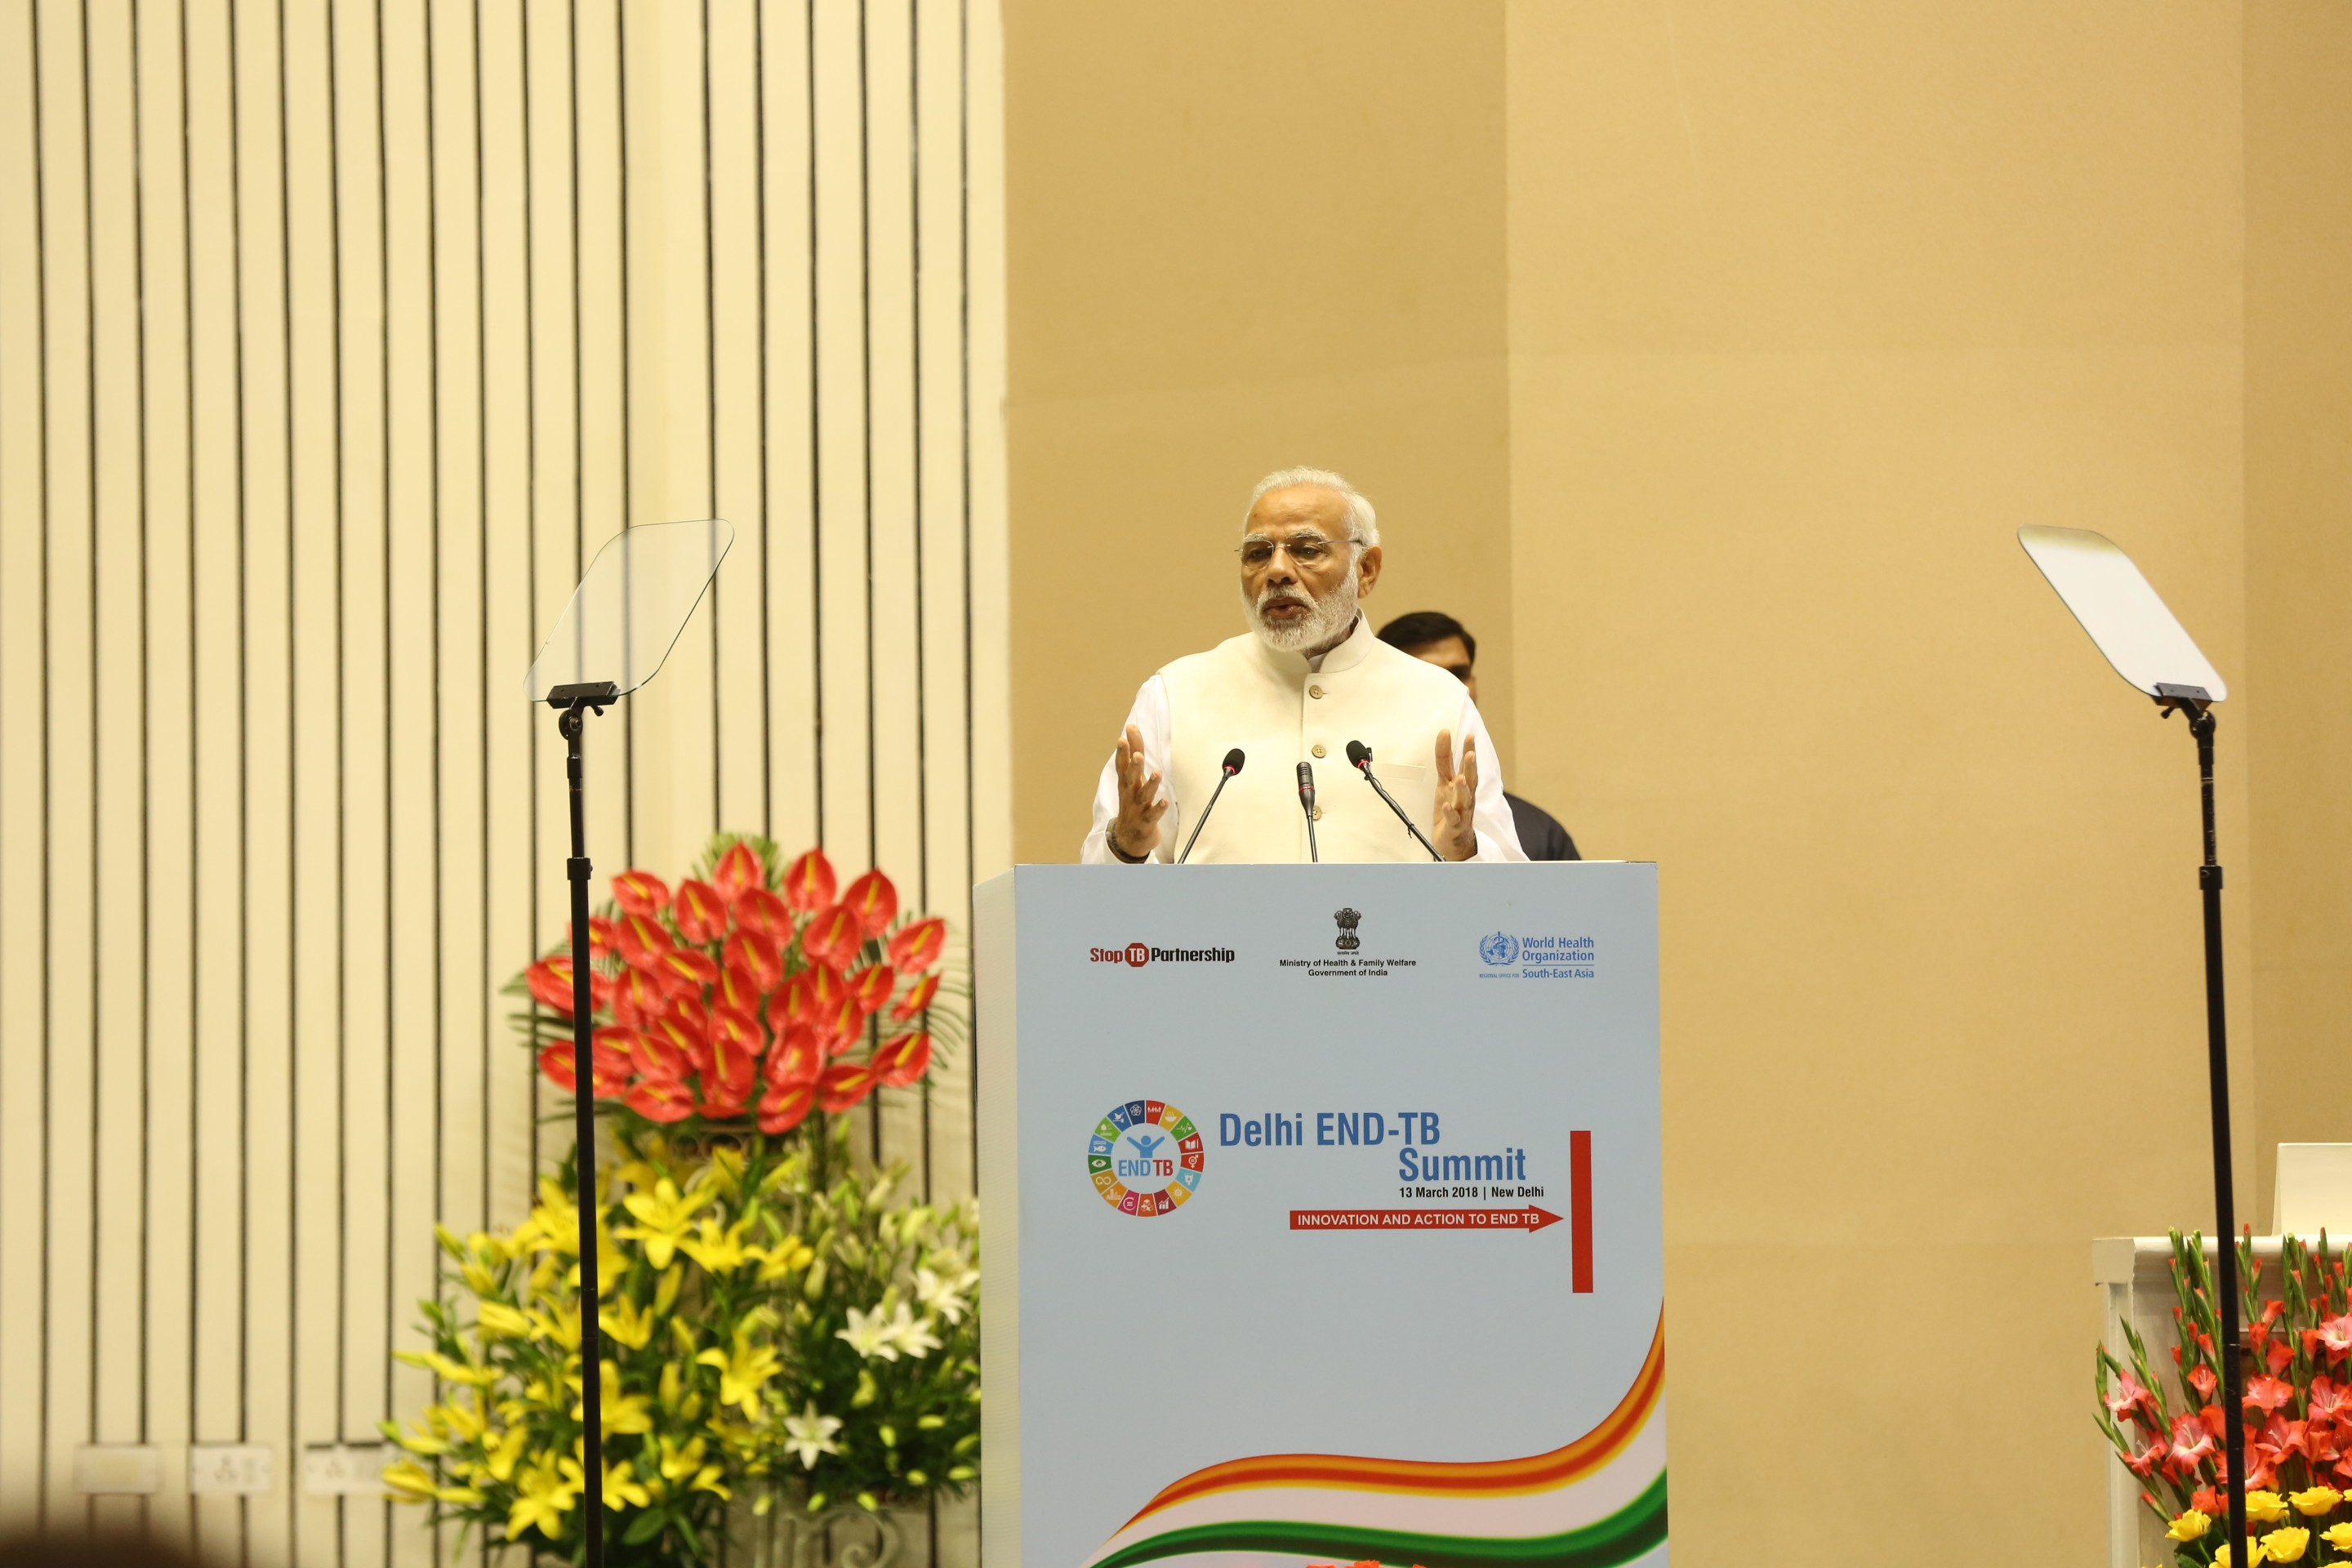 Hon'ble Prime Minister addressing on the occasion of Delhi End TB Summit